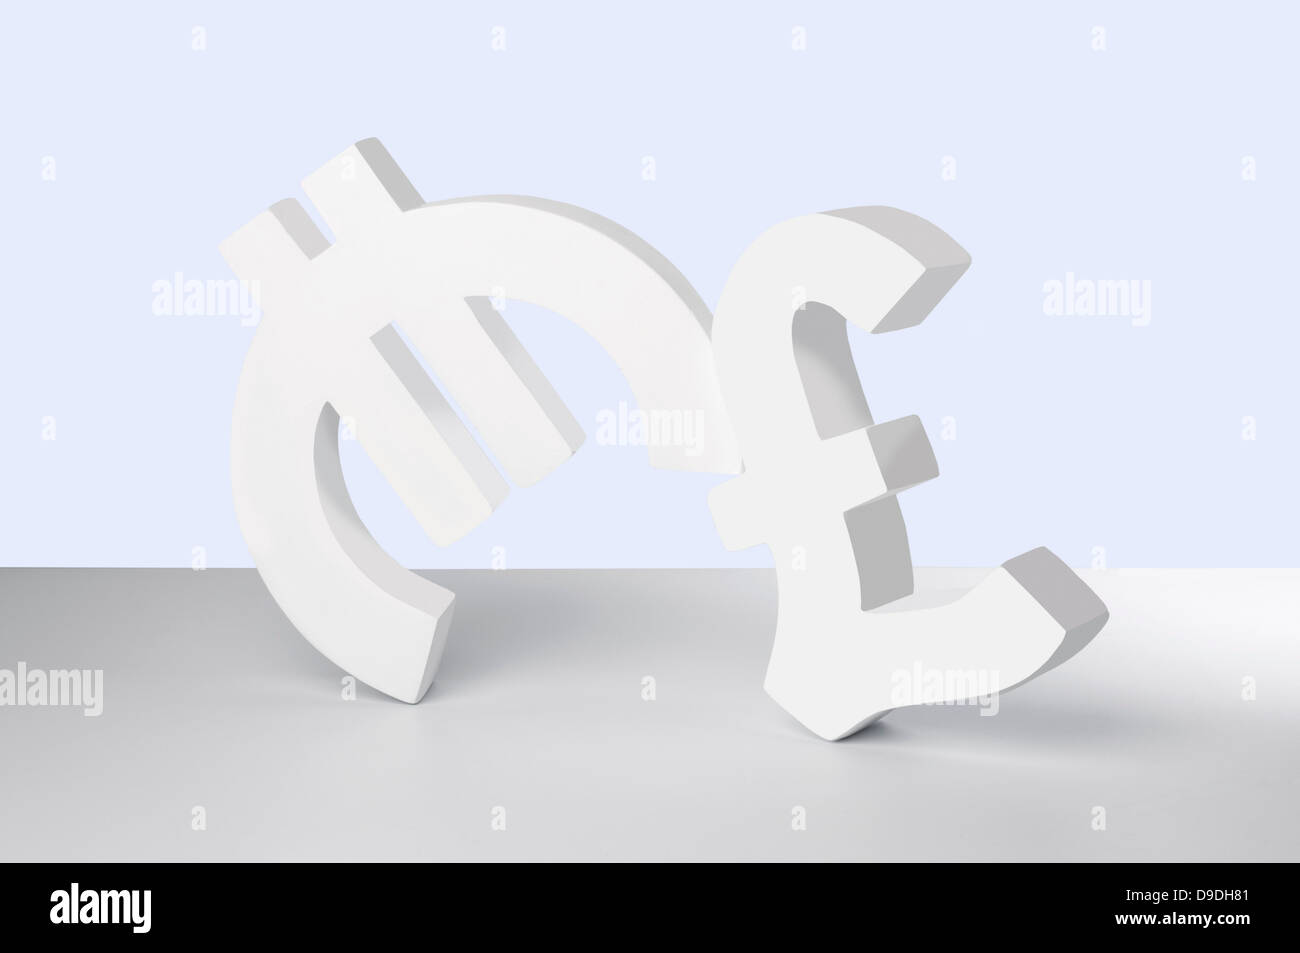 Pound Signs Stock Photos Pound Signs Stock Images Alamy